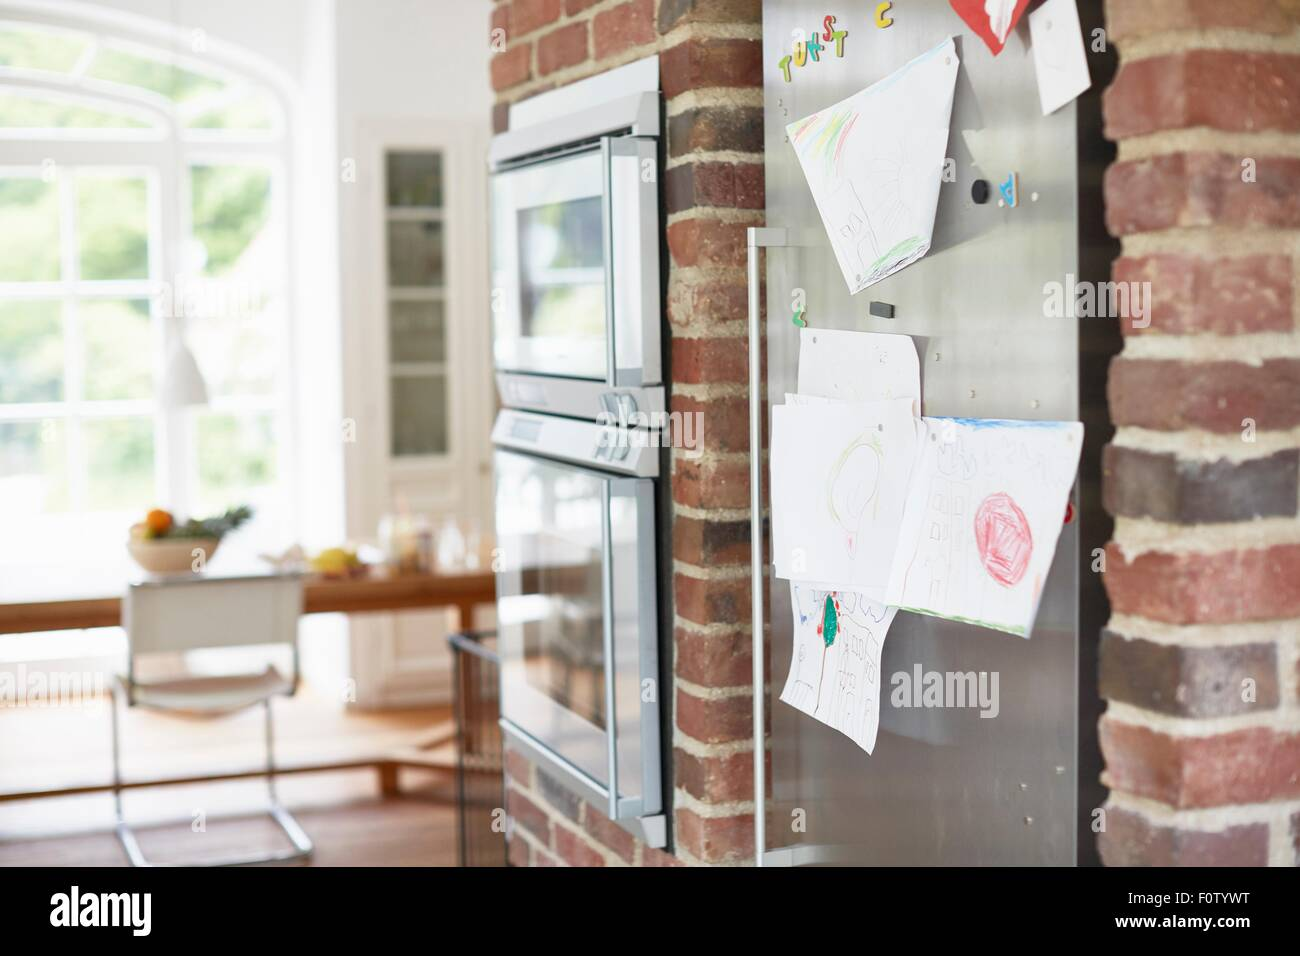 Children's drawings stuck on fridge door - Stock Image